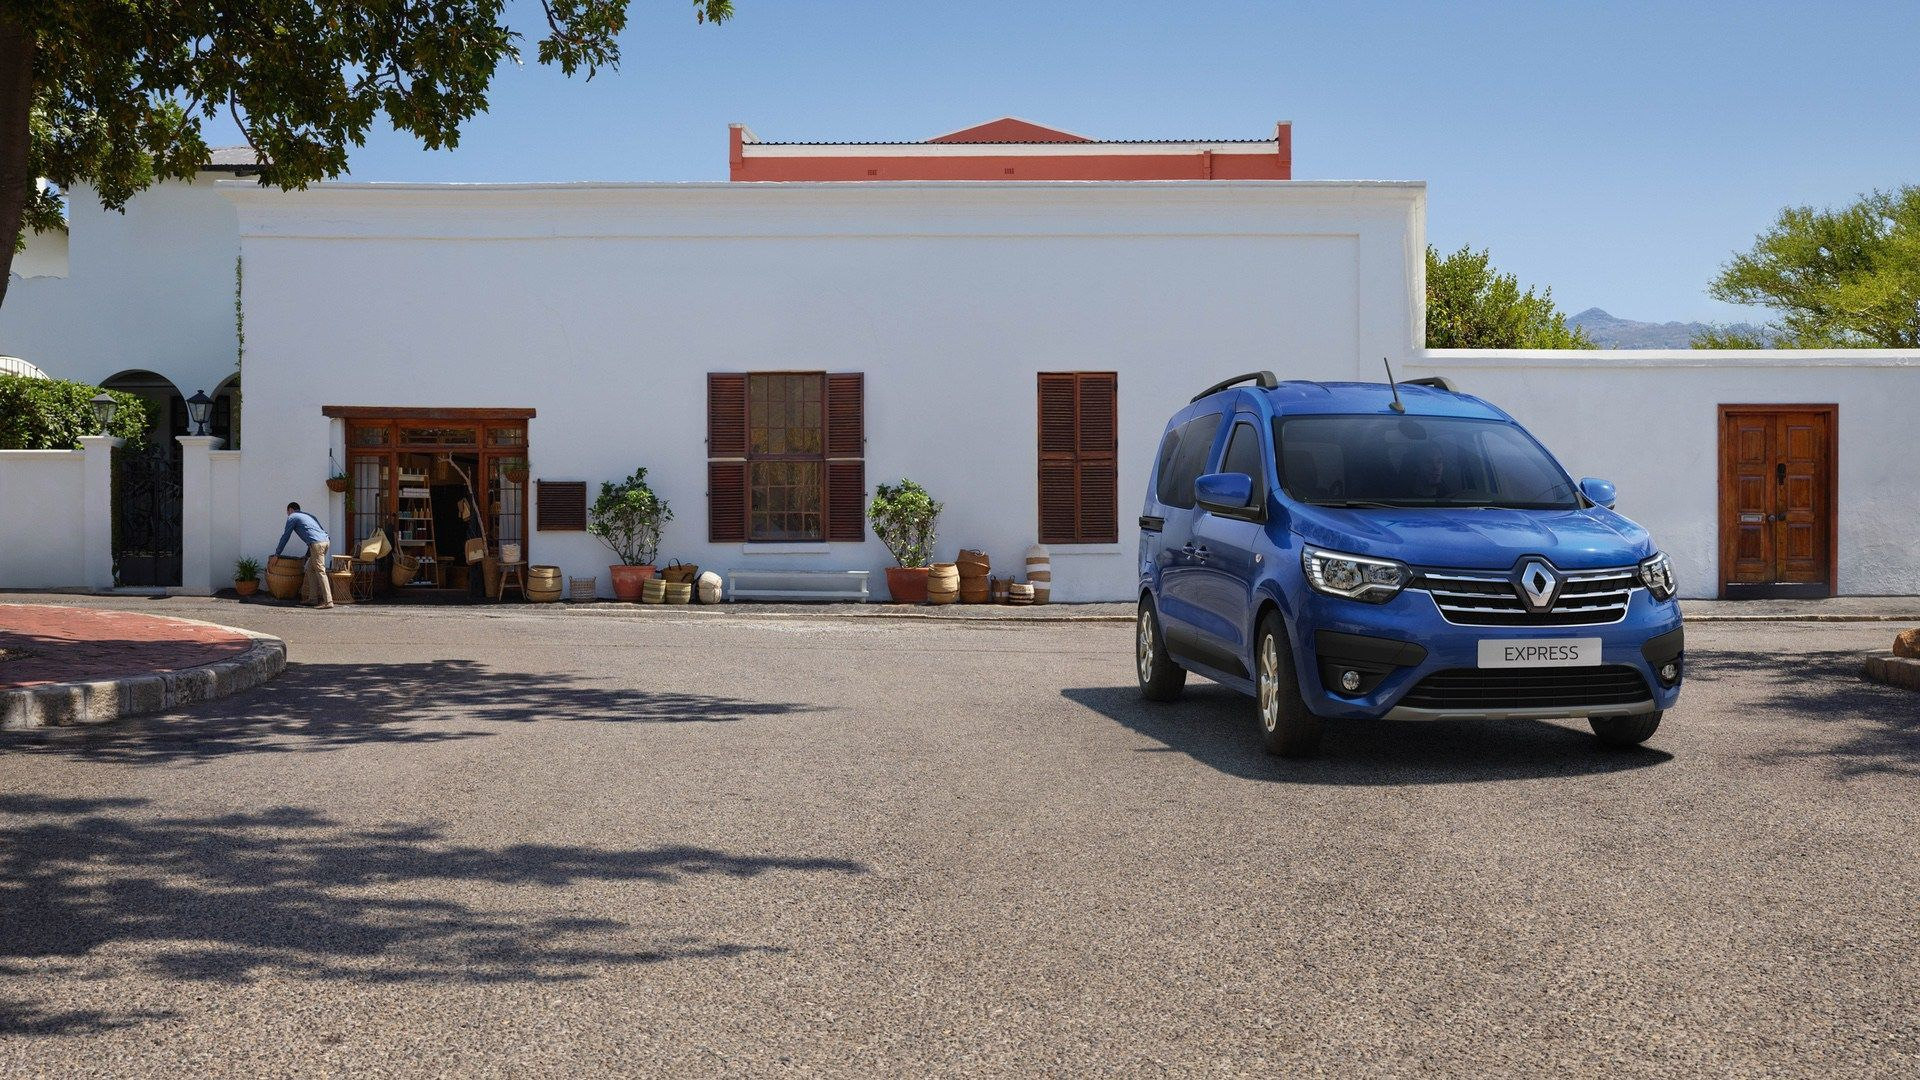 25-2020-THE-NEW-RENAULT-EXPRESS